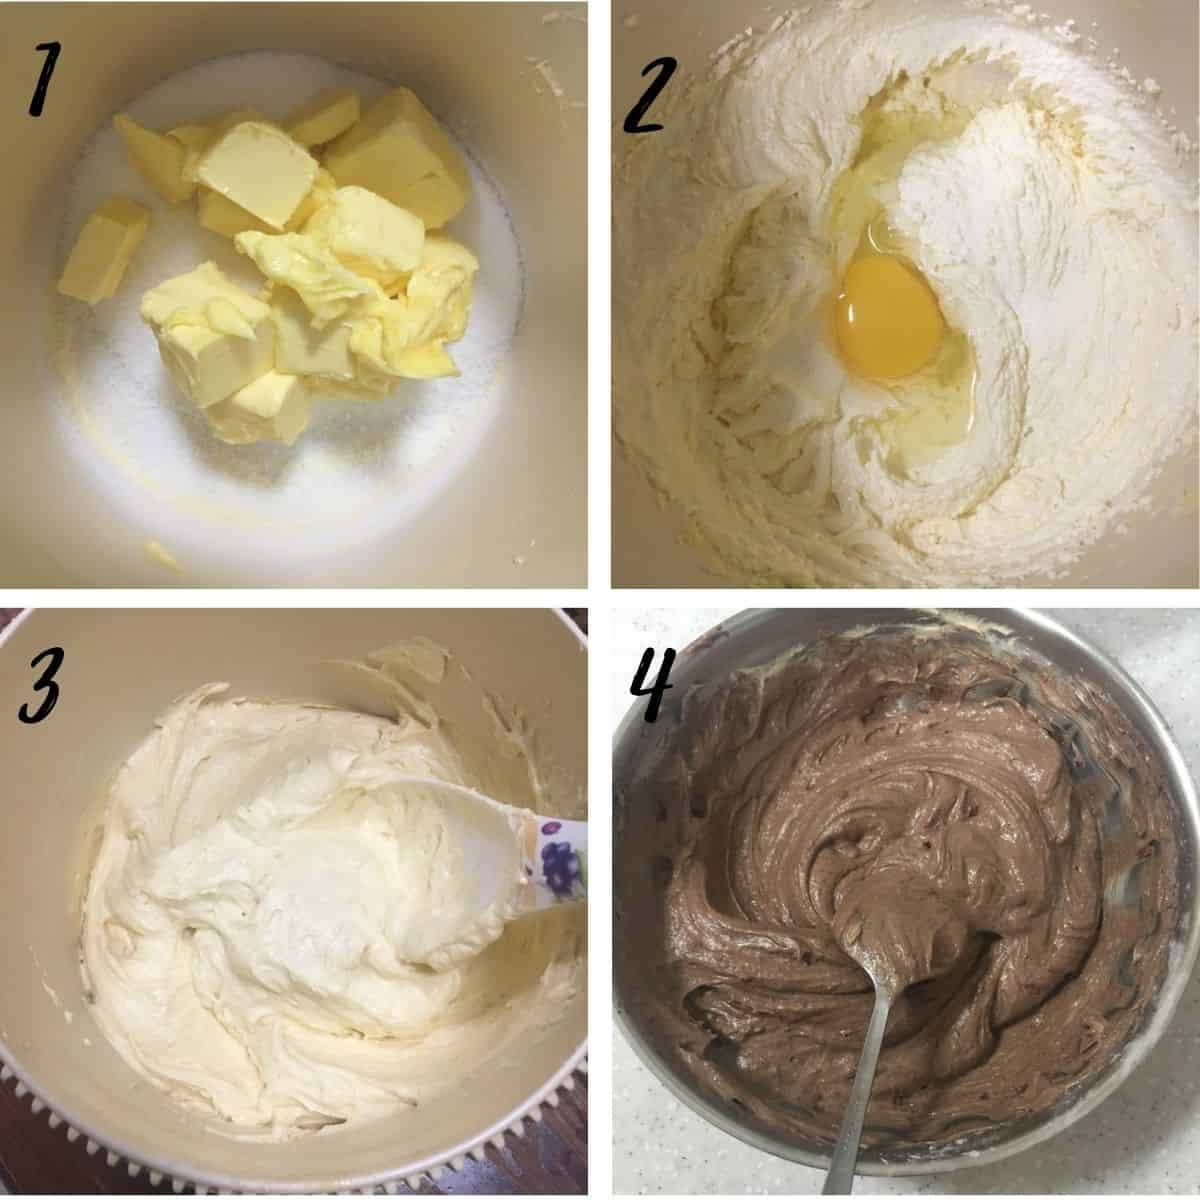 A poster of 4 images showing how mix cake batter